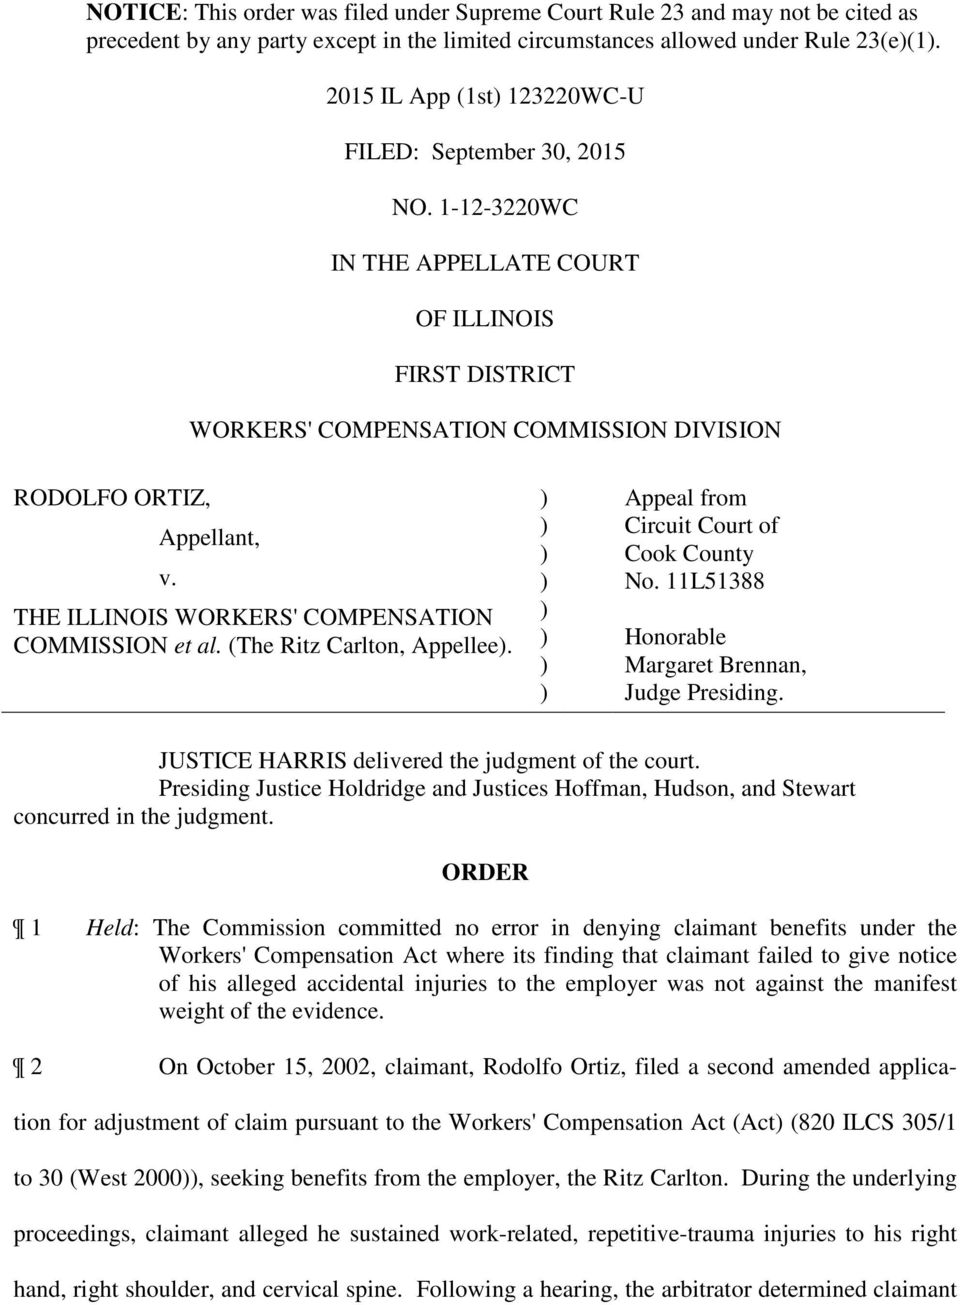 THE ILLINOIS WORKERS' COMPENSATION COMMISSION et al. (The Ritz Carlton, Appellee. Appeal from Circuit Court of Cook County No. 11L51388 Honorable Margaret Brennan, Judge Presiding.